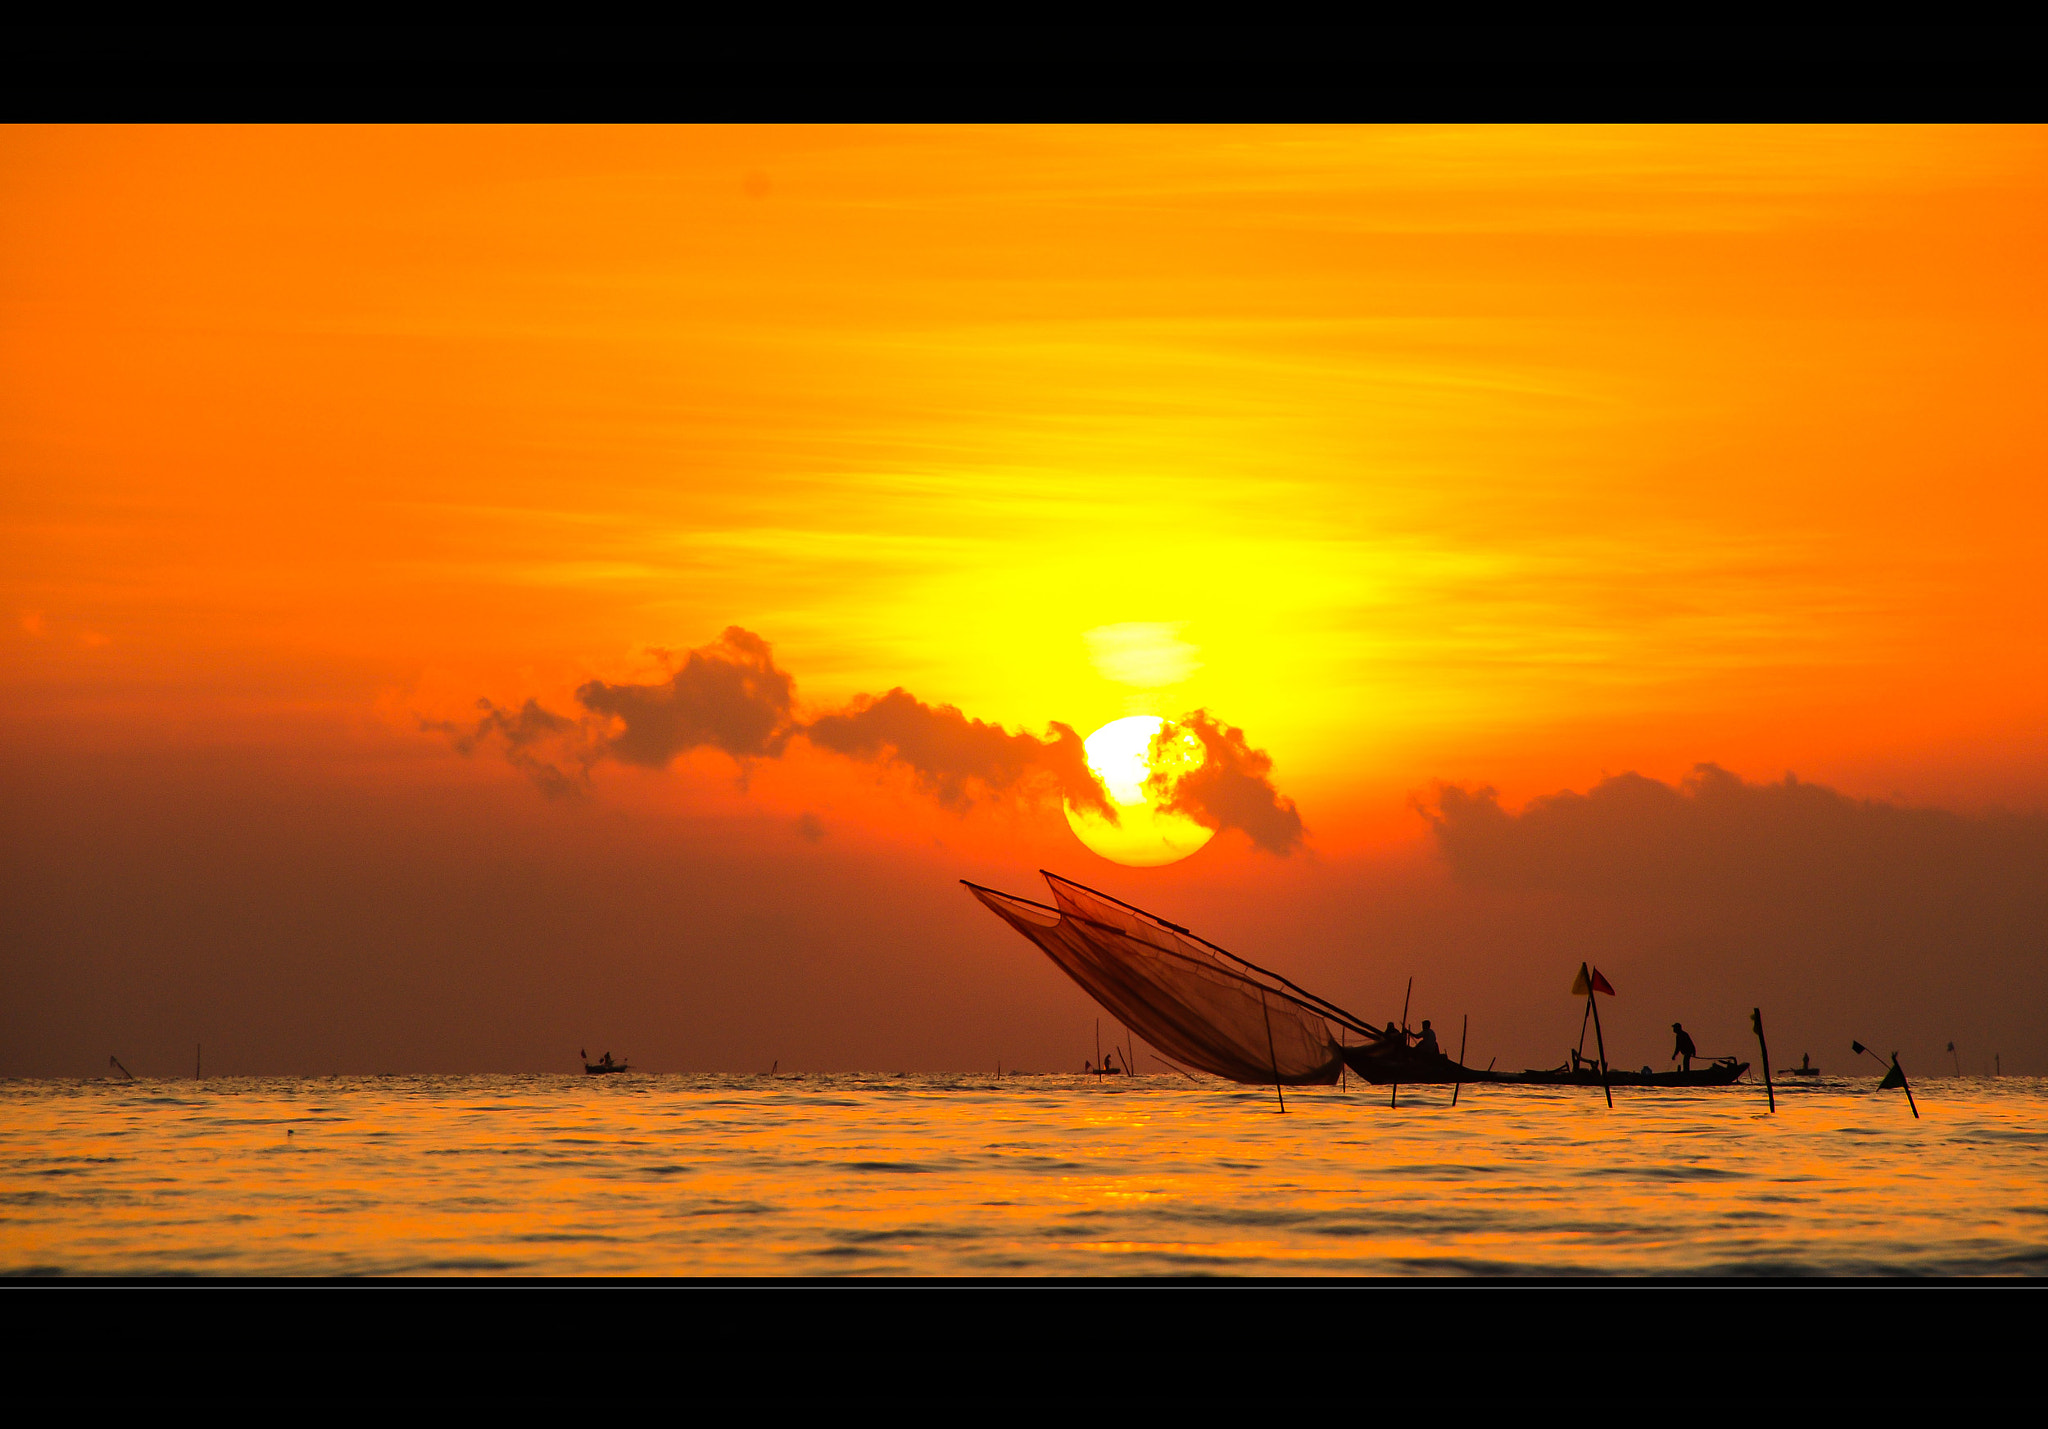 Photograph Catch the sun! by Mùa Thu on 500px